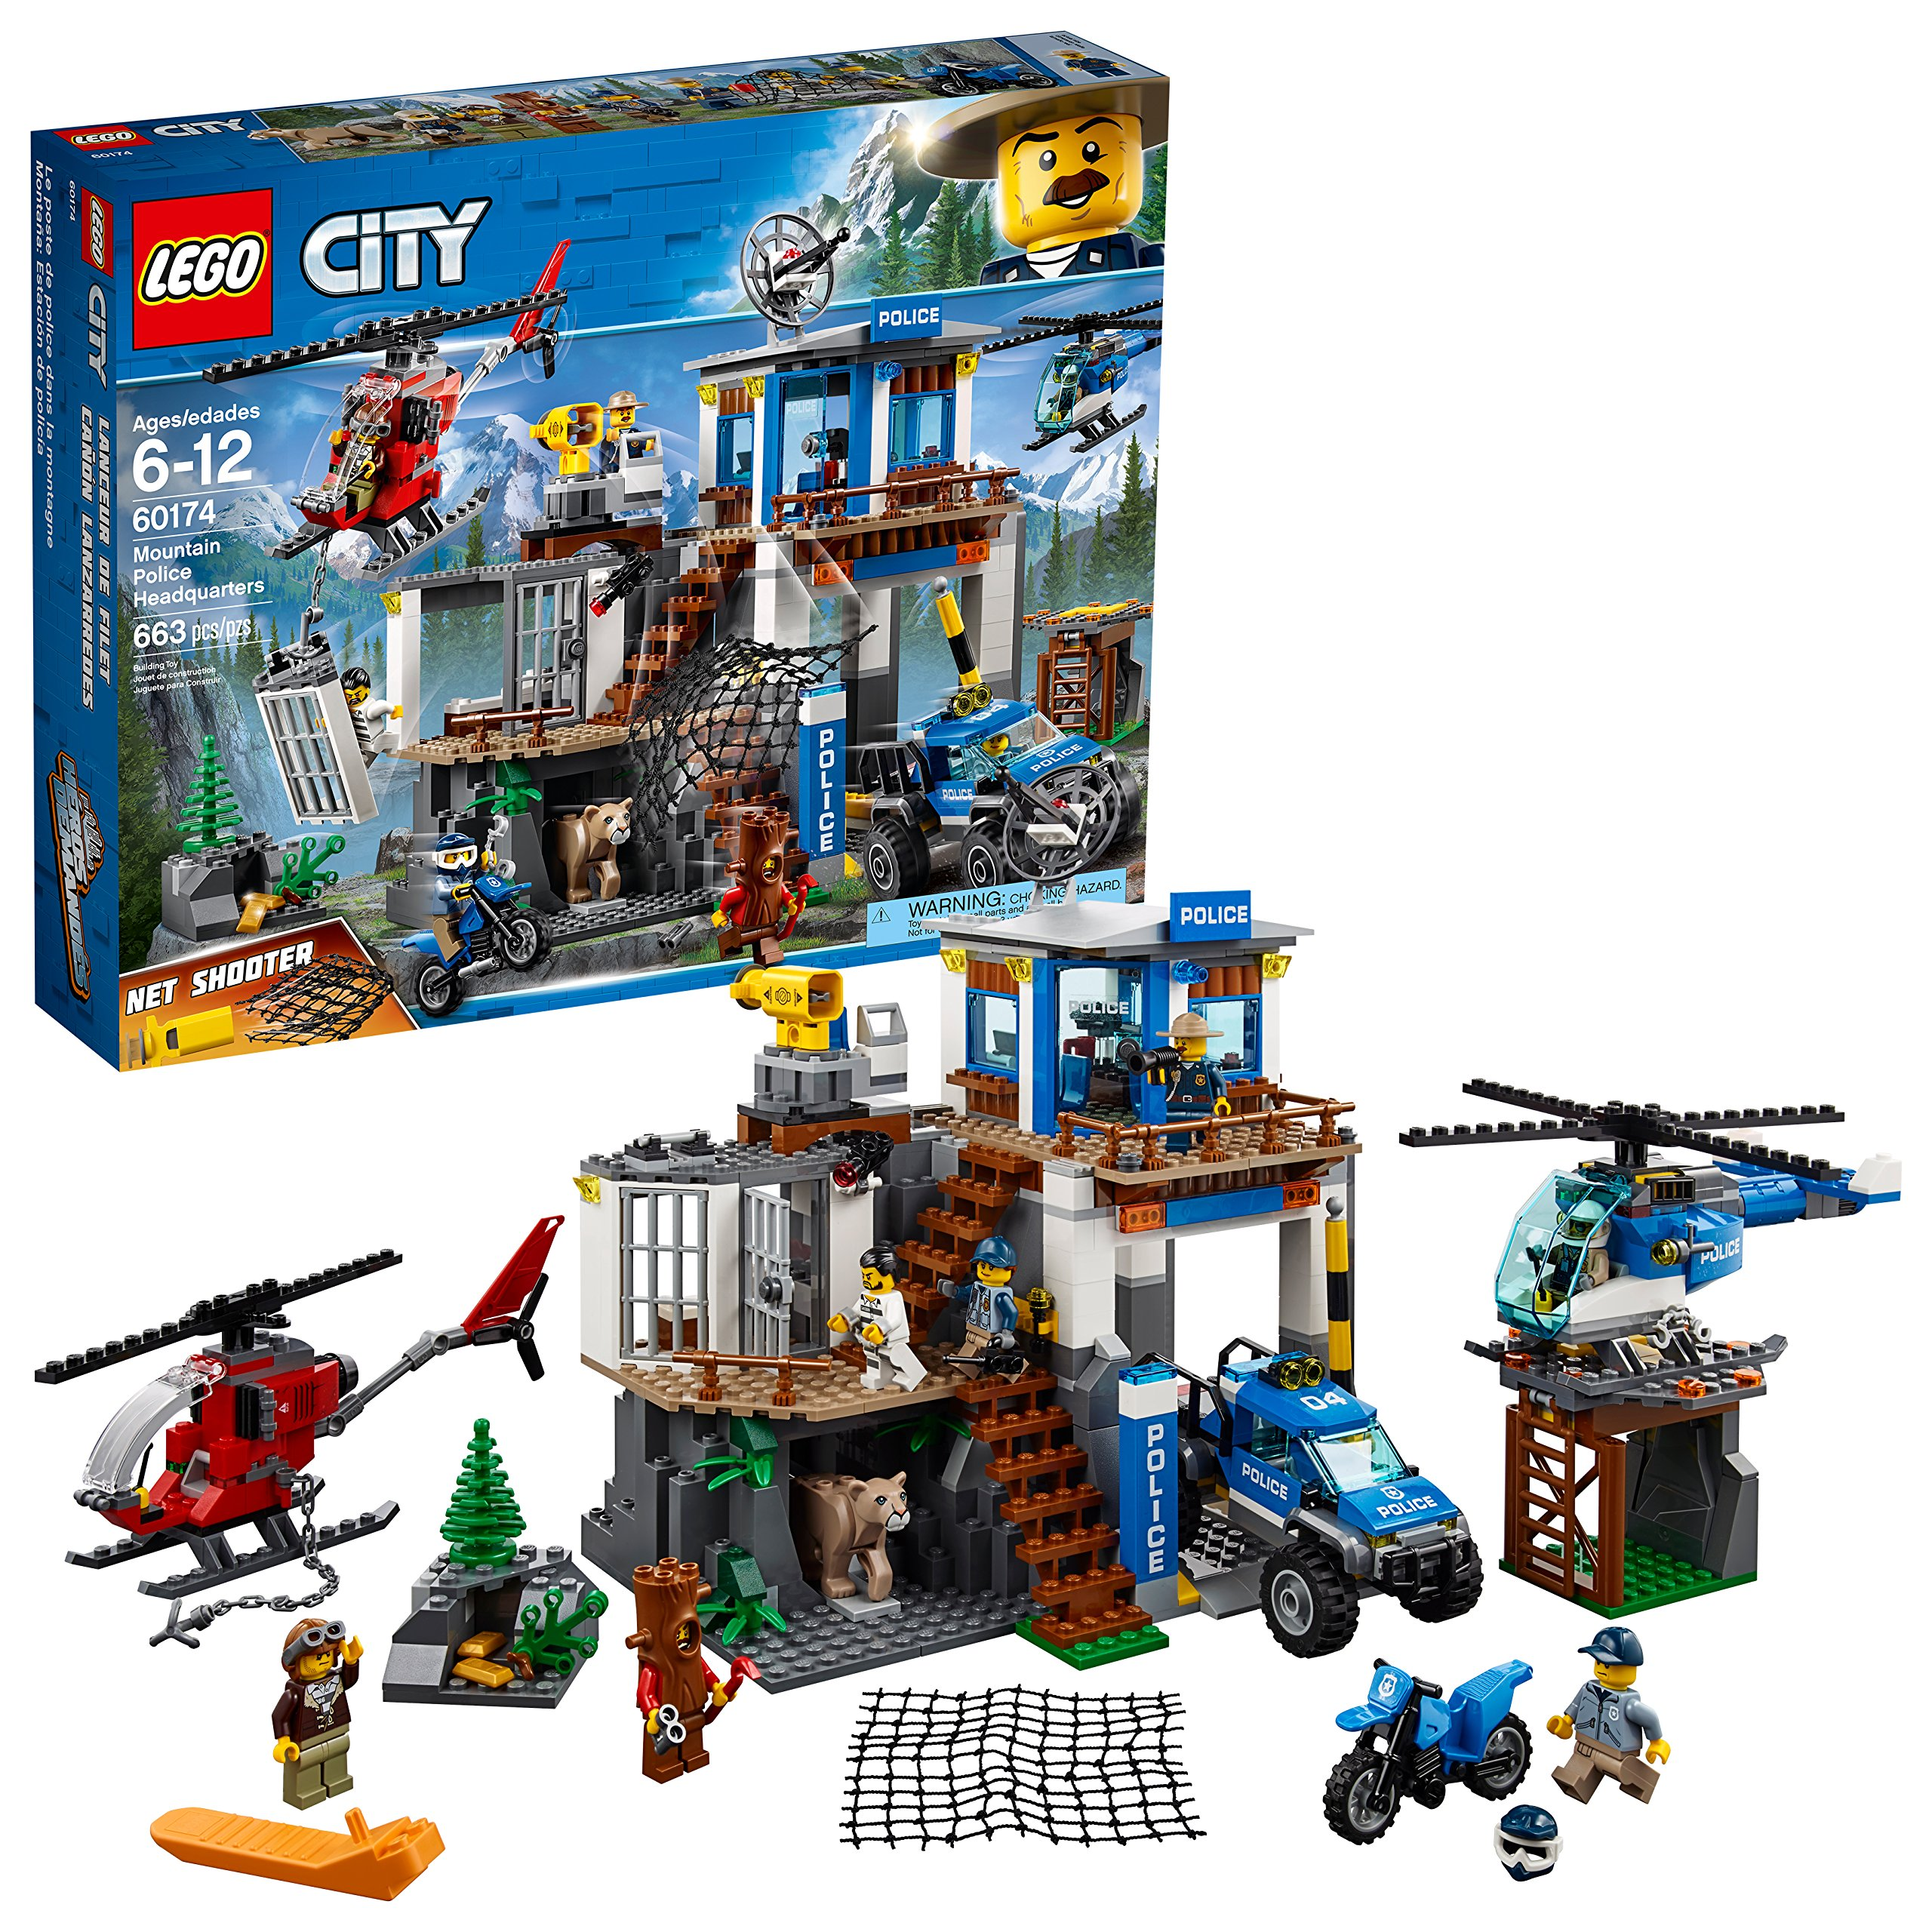 LEGO City Mountain Police Headquarters 60174 Building Kit (663 Pieces) by LEGO